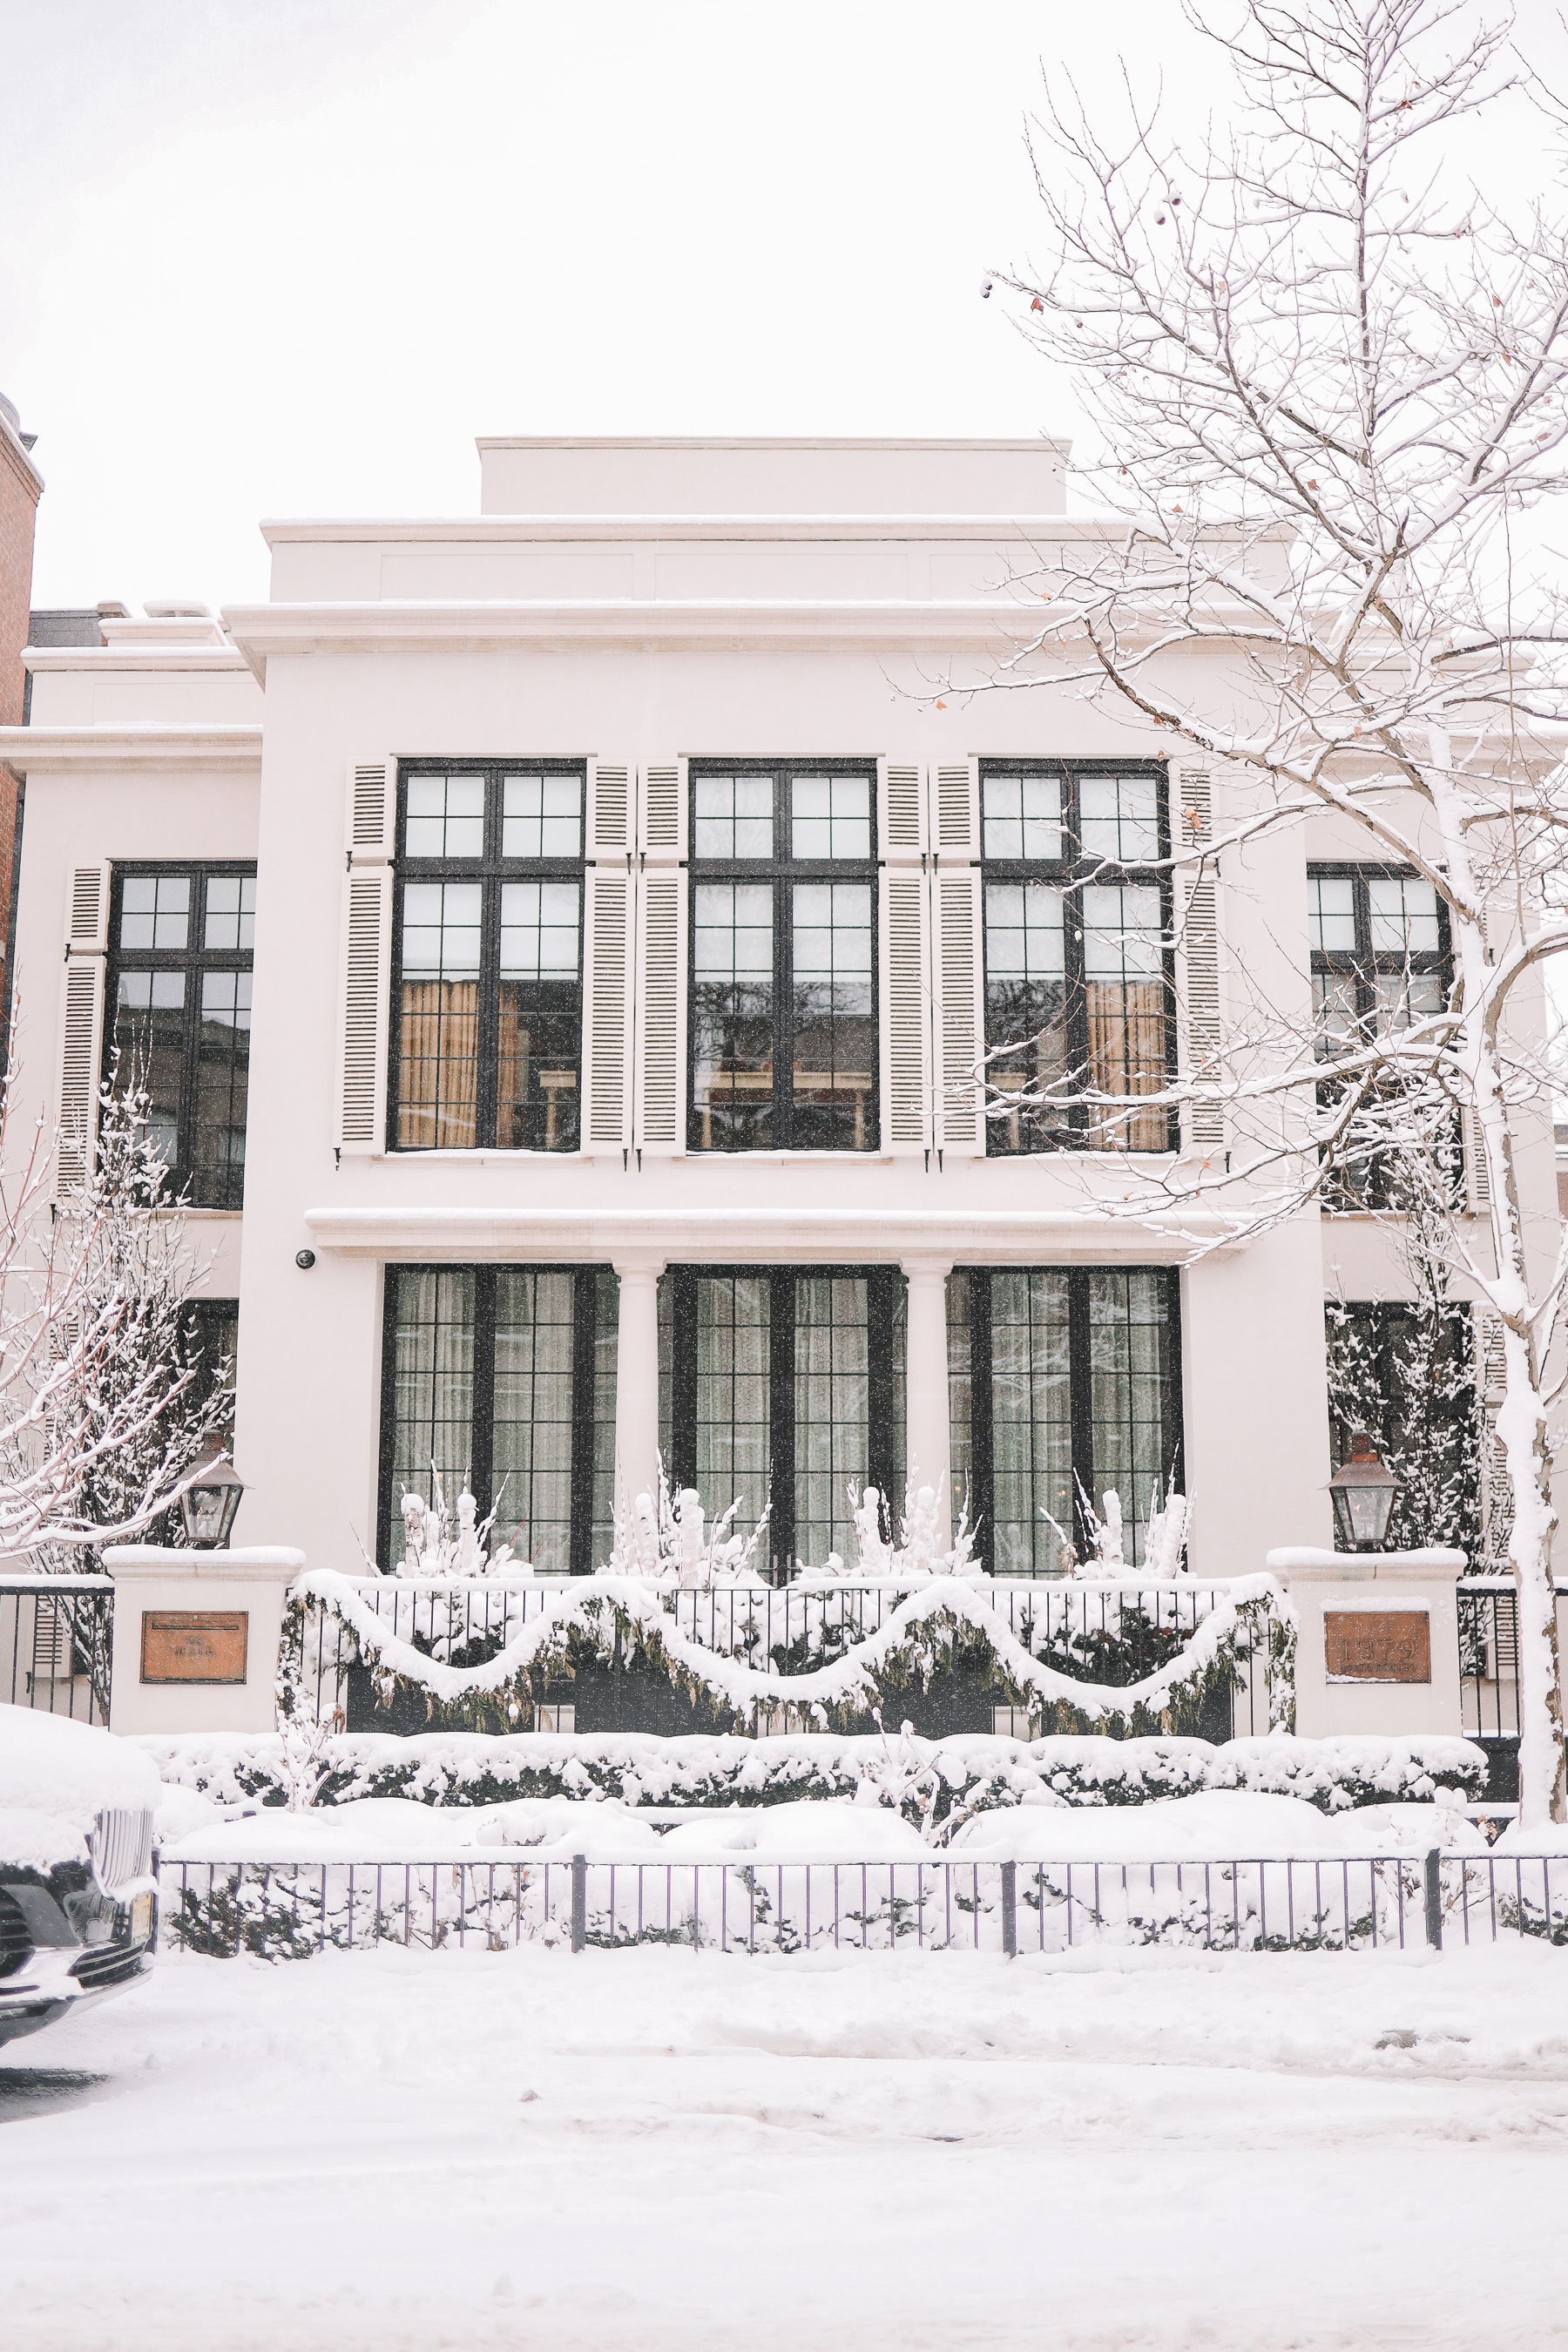 snow in buildings chicago | Happiness Walk Through Lincoln Park